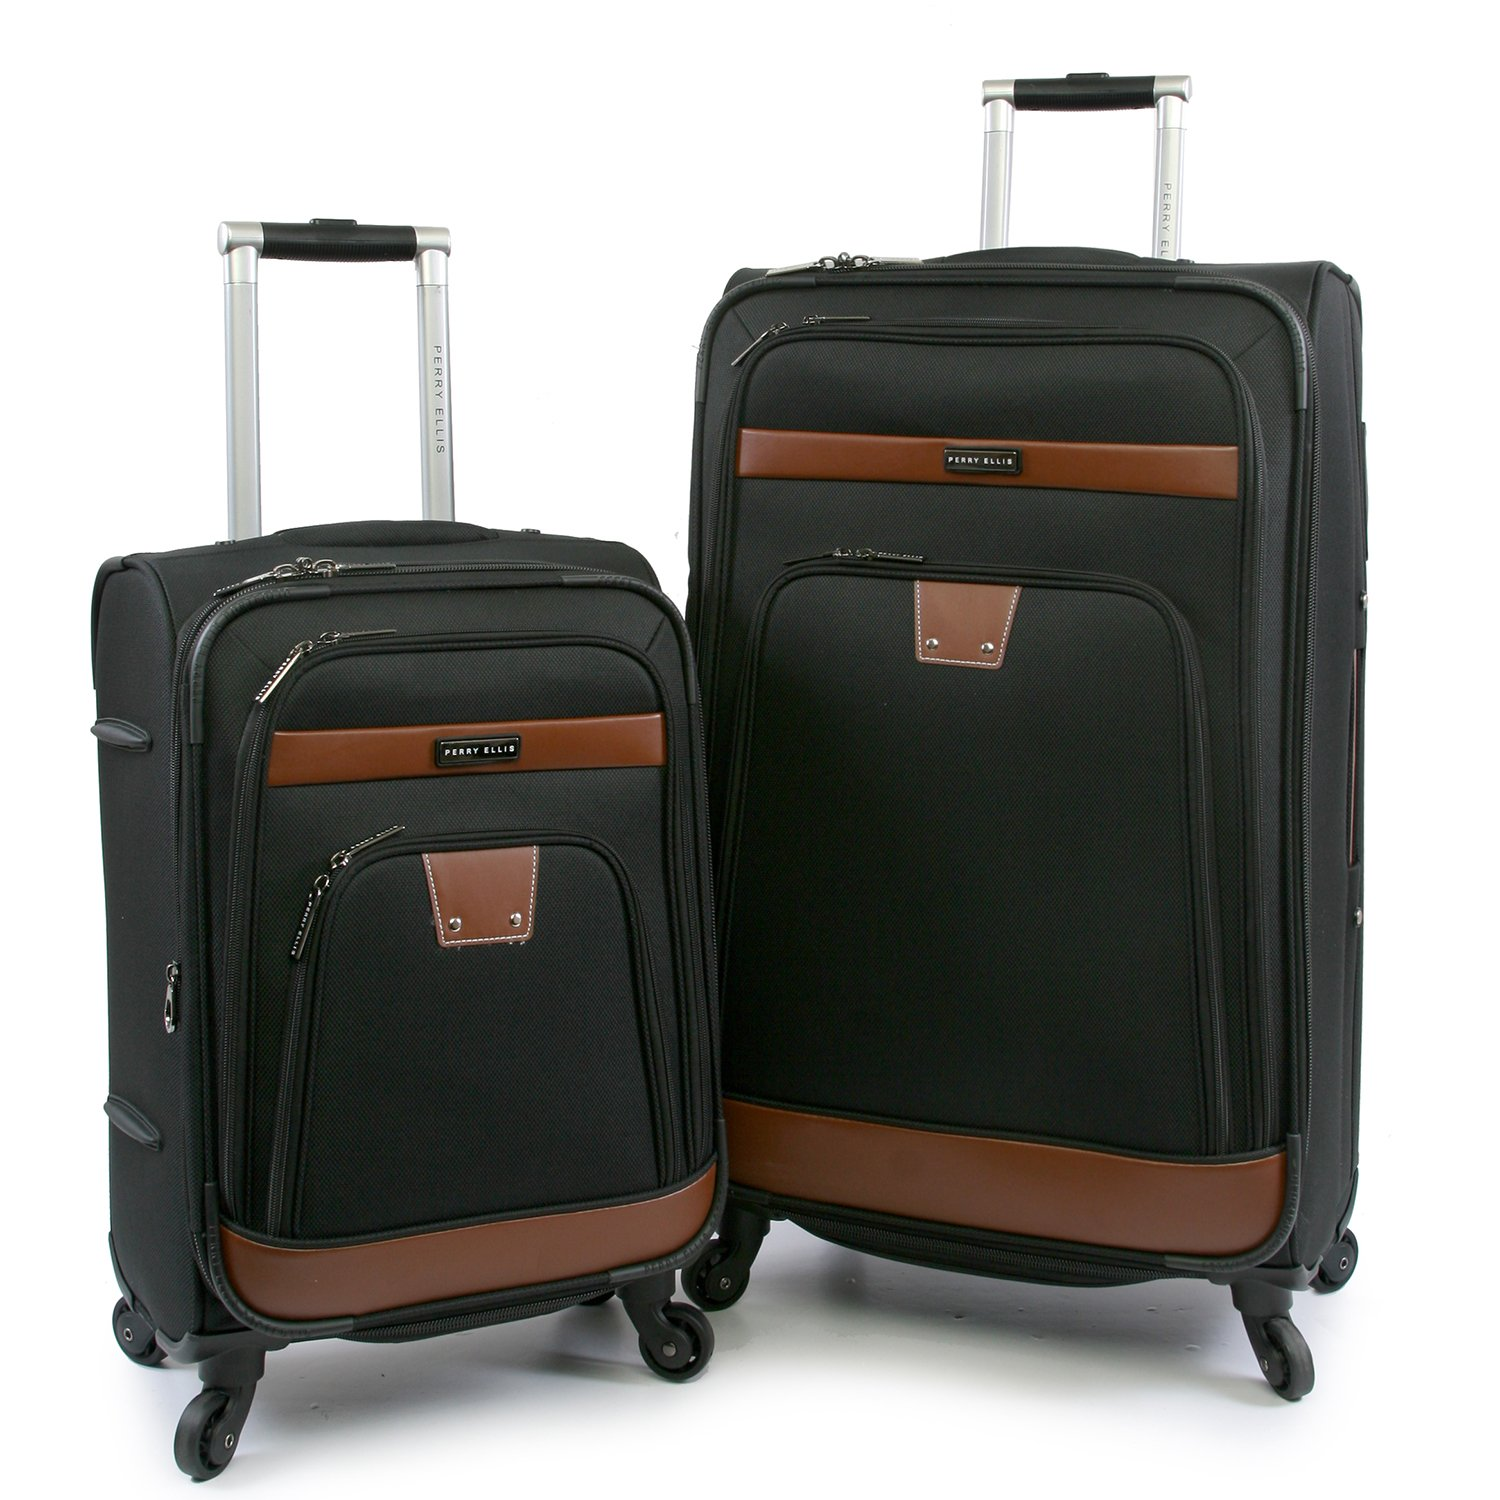 Luggage Premise 2 Piece Set Expandable Suitcase with Spinner Wheels